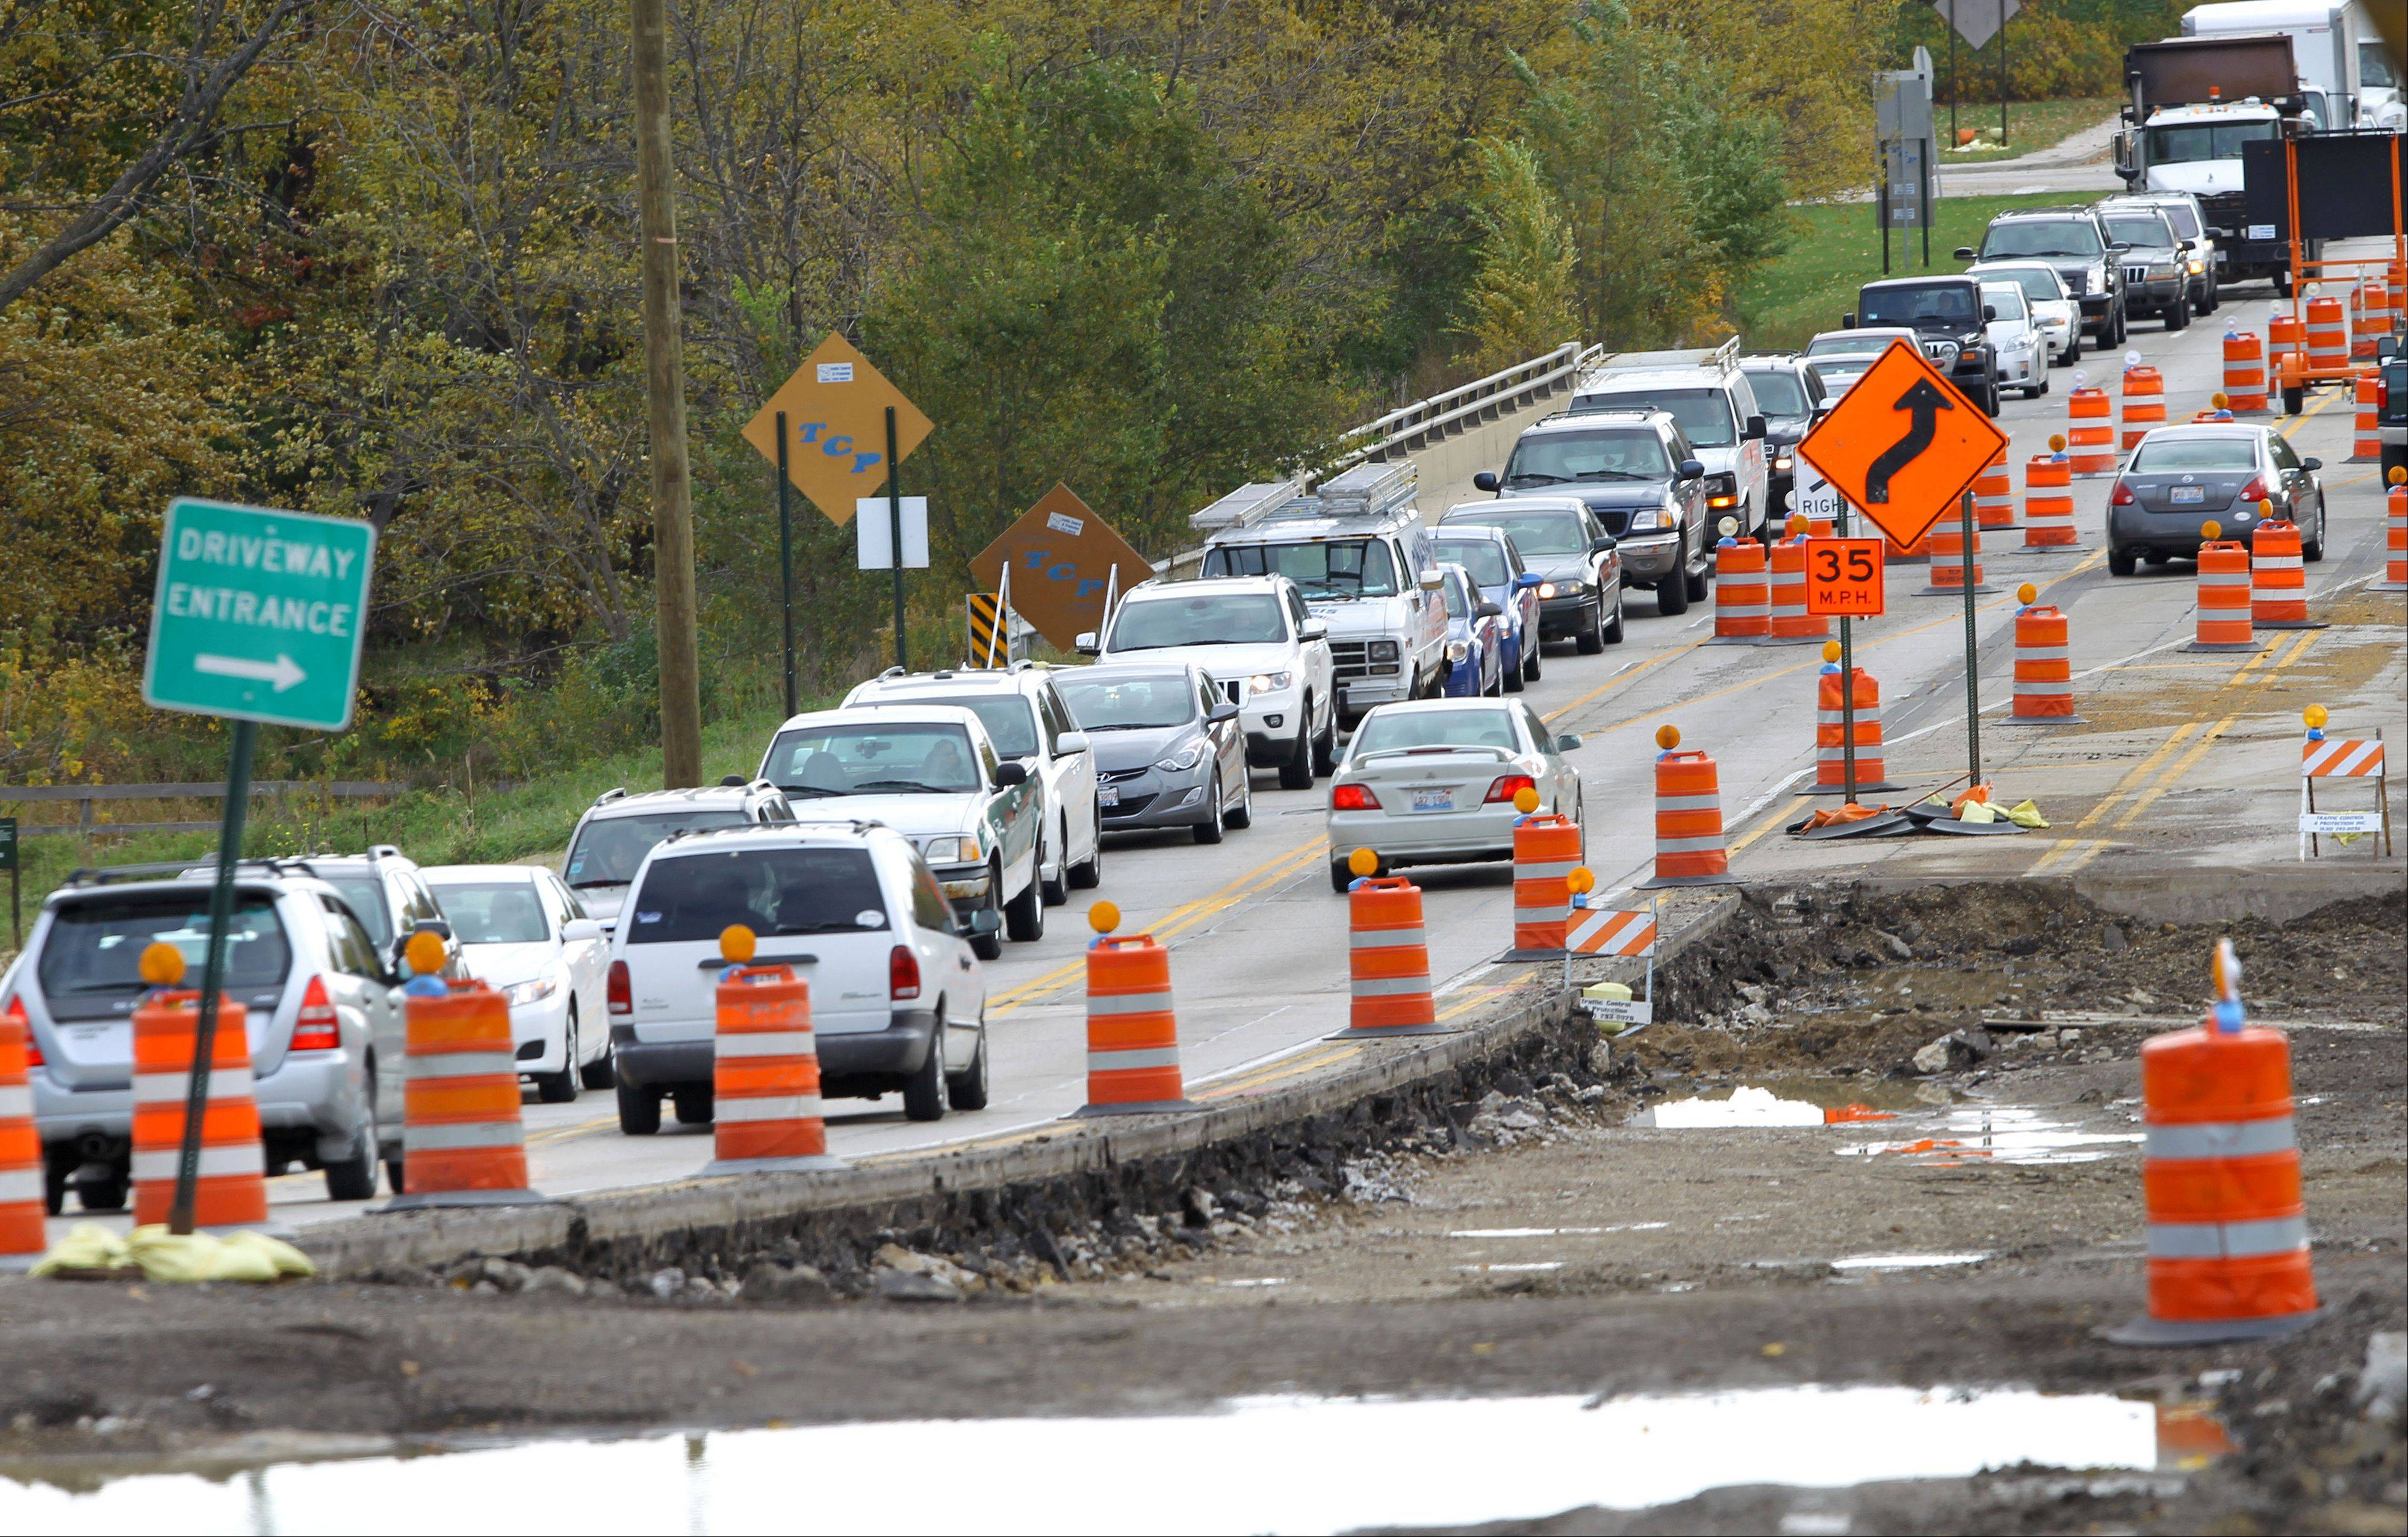 Westbound traffic backs up on Route 137 heading toward Milwaukee Avenue in Libertyville, where the road has been narrowed to one lane in each direction during construction. Village leaders and local business affected by the construction are unhappy with the slow rate of progress.